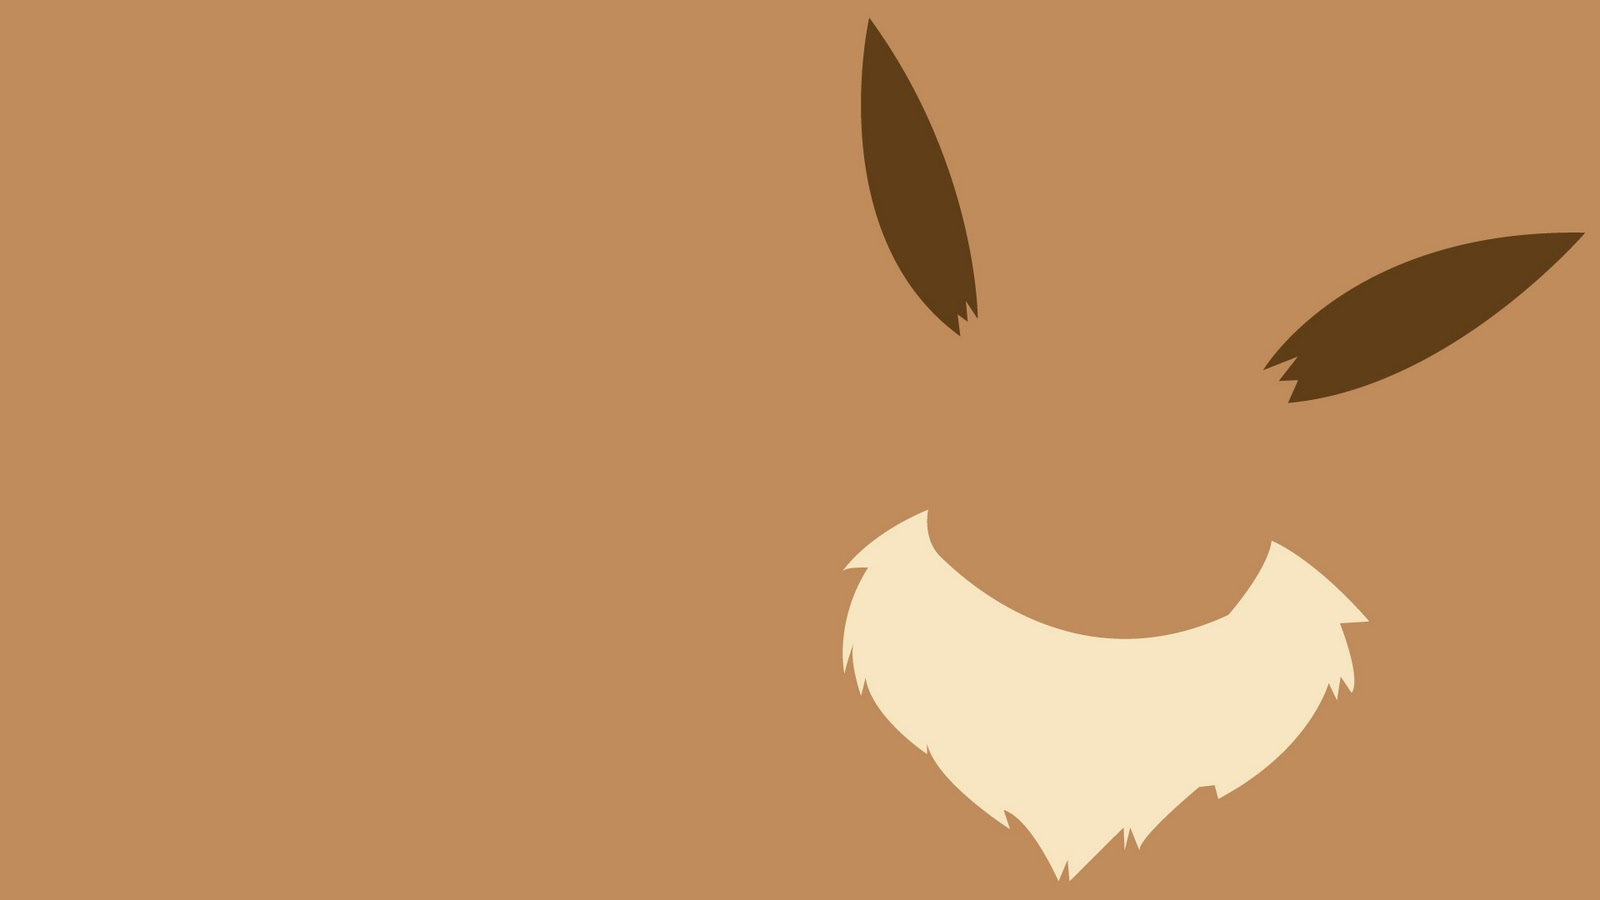 Top Wallpaper Halloween Eevee - eevee  Snapshot_523577.jpg